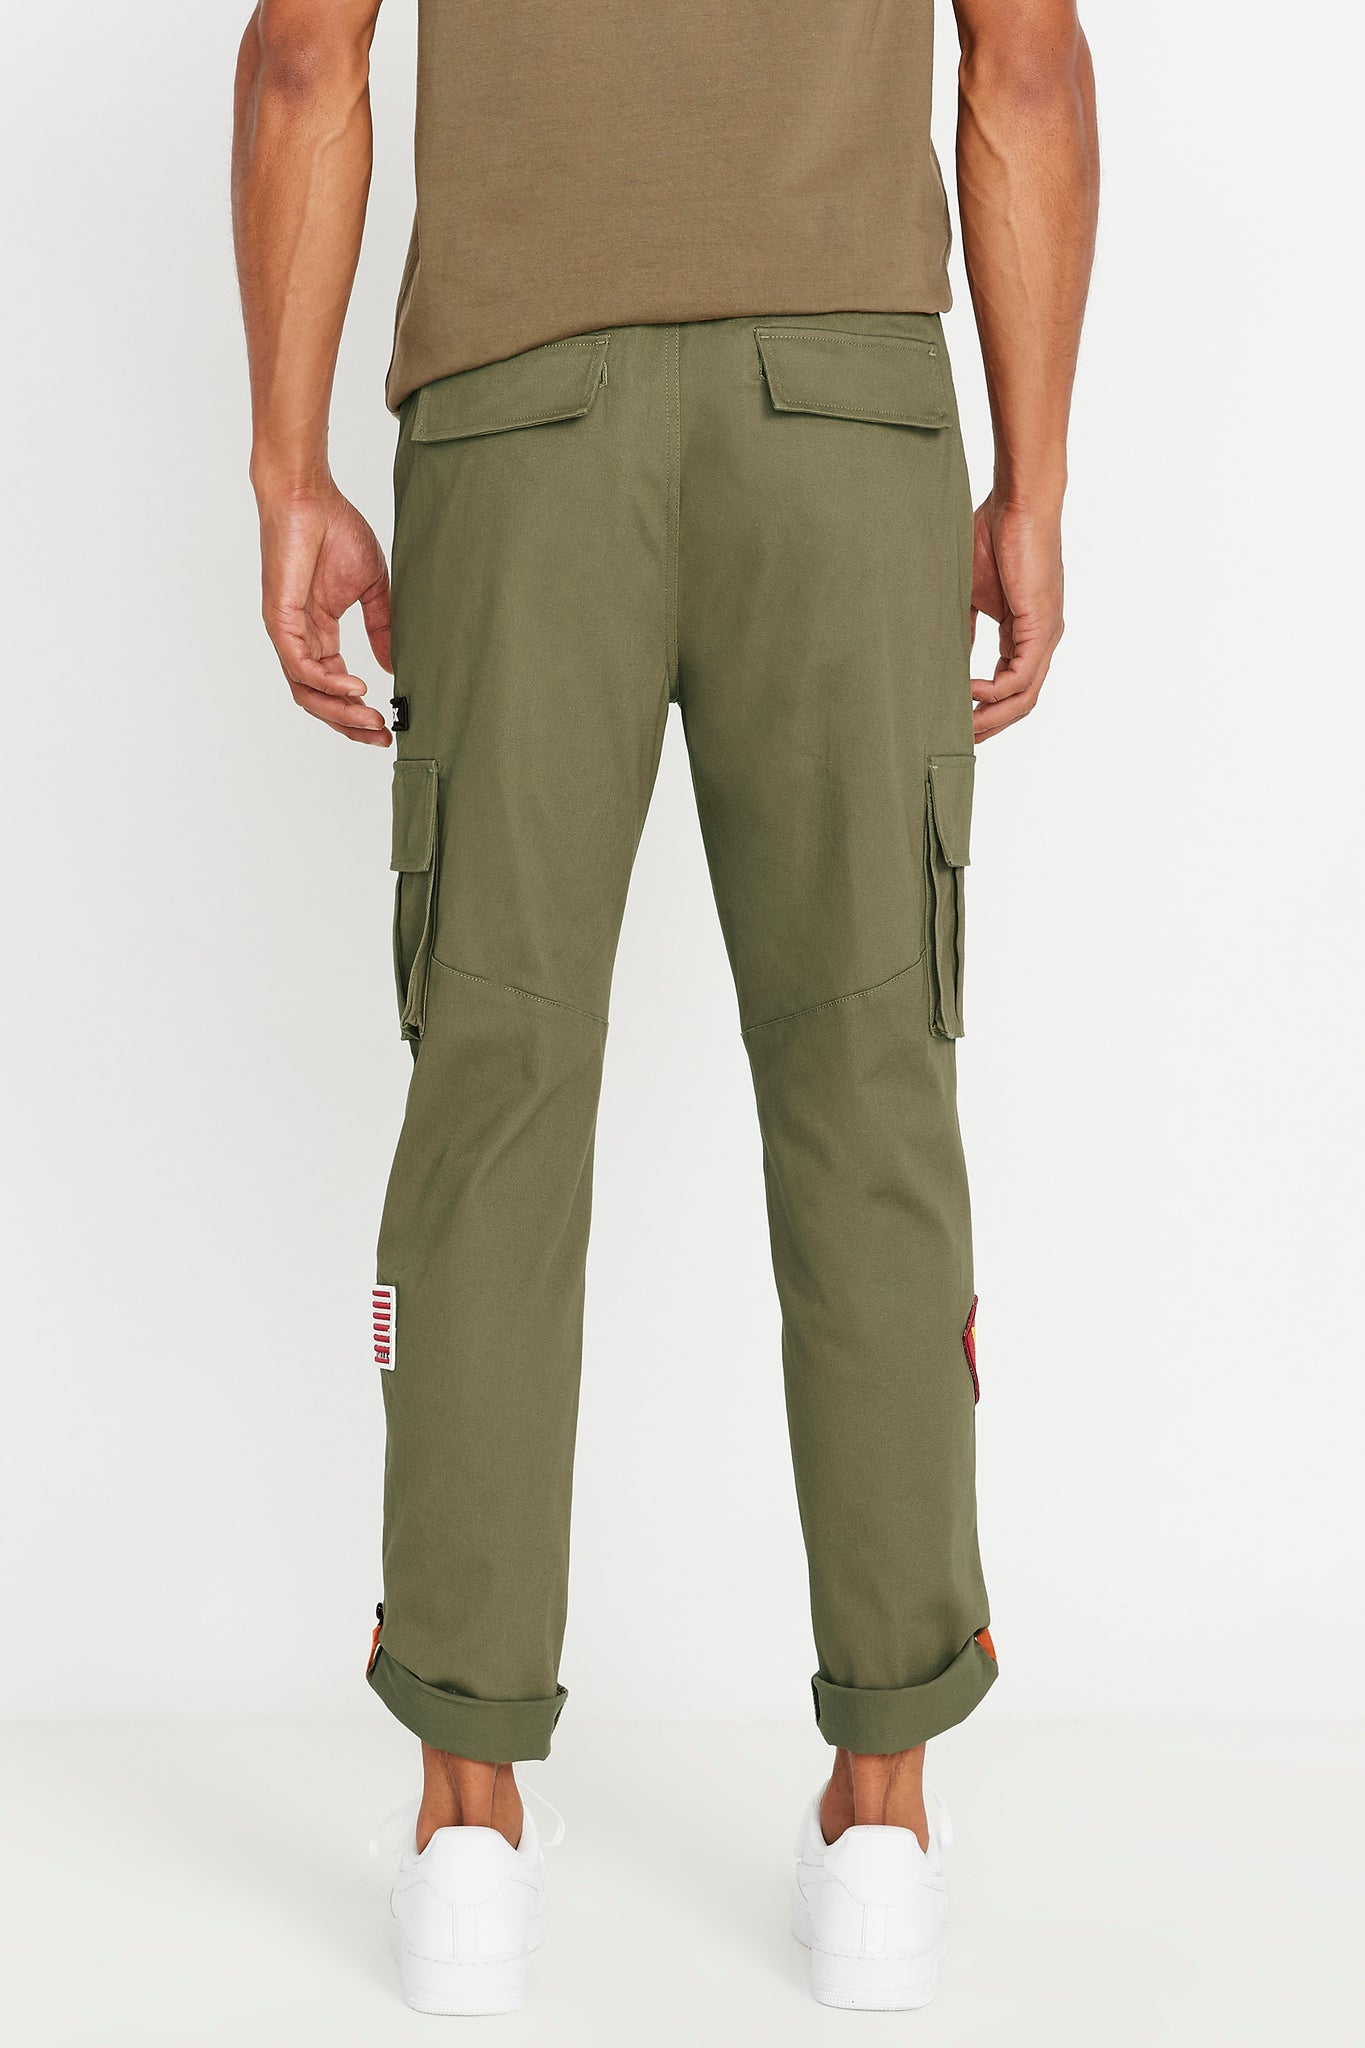 Back view of olive pants with two flap cover pockets and rolled up hem with reflective logo